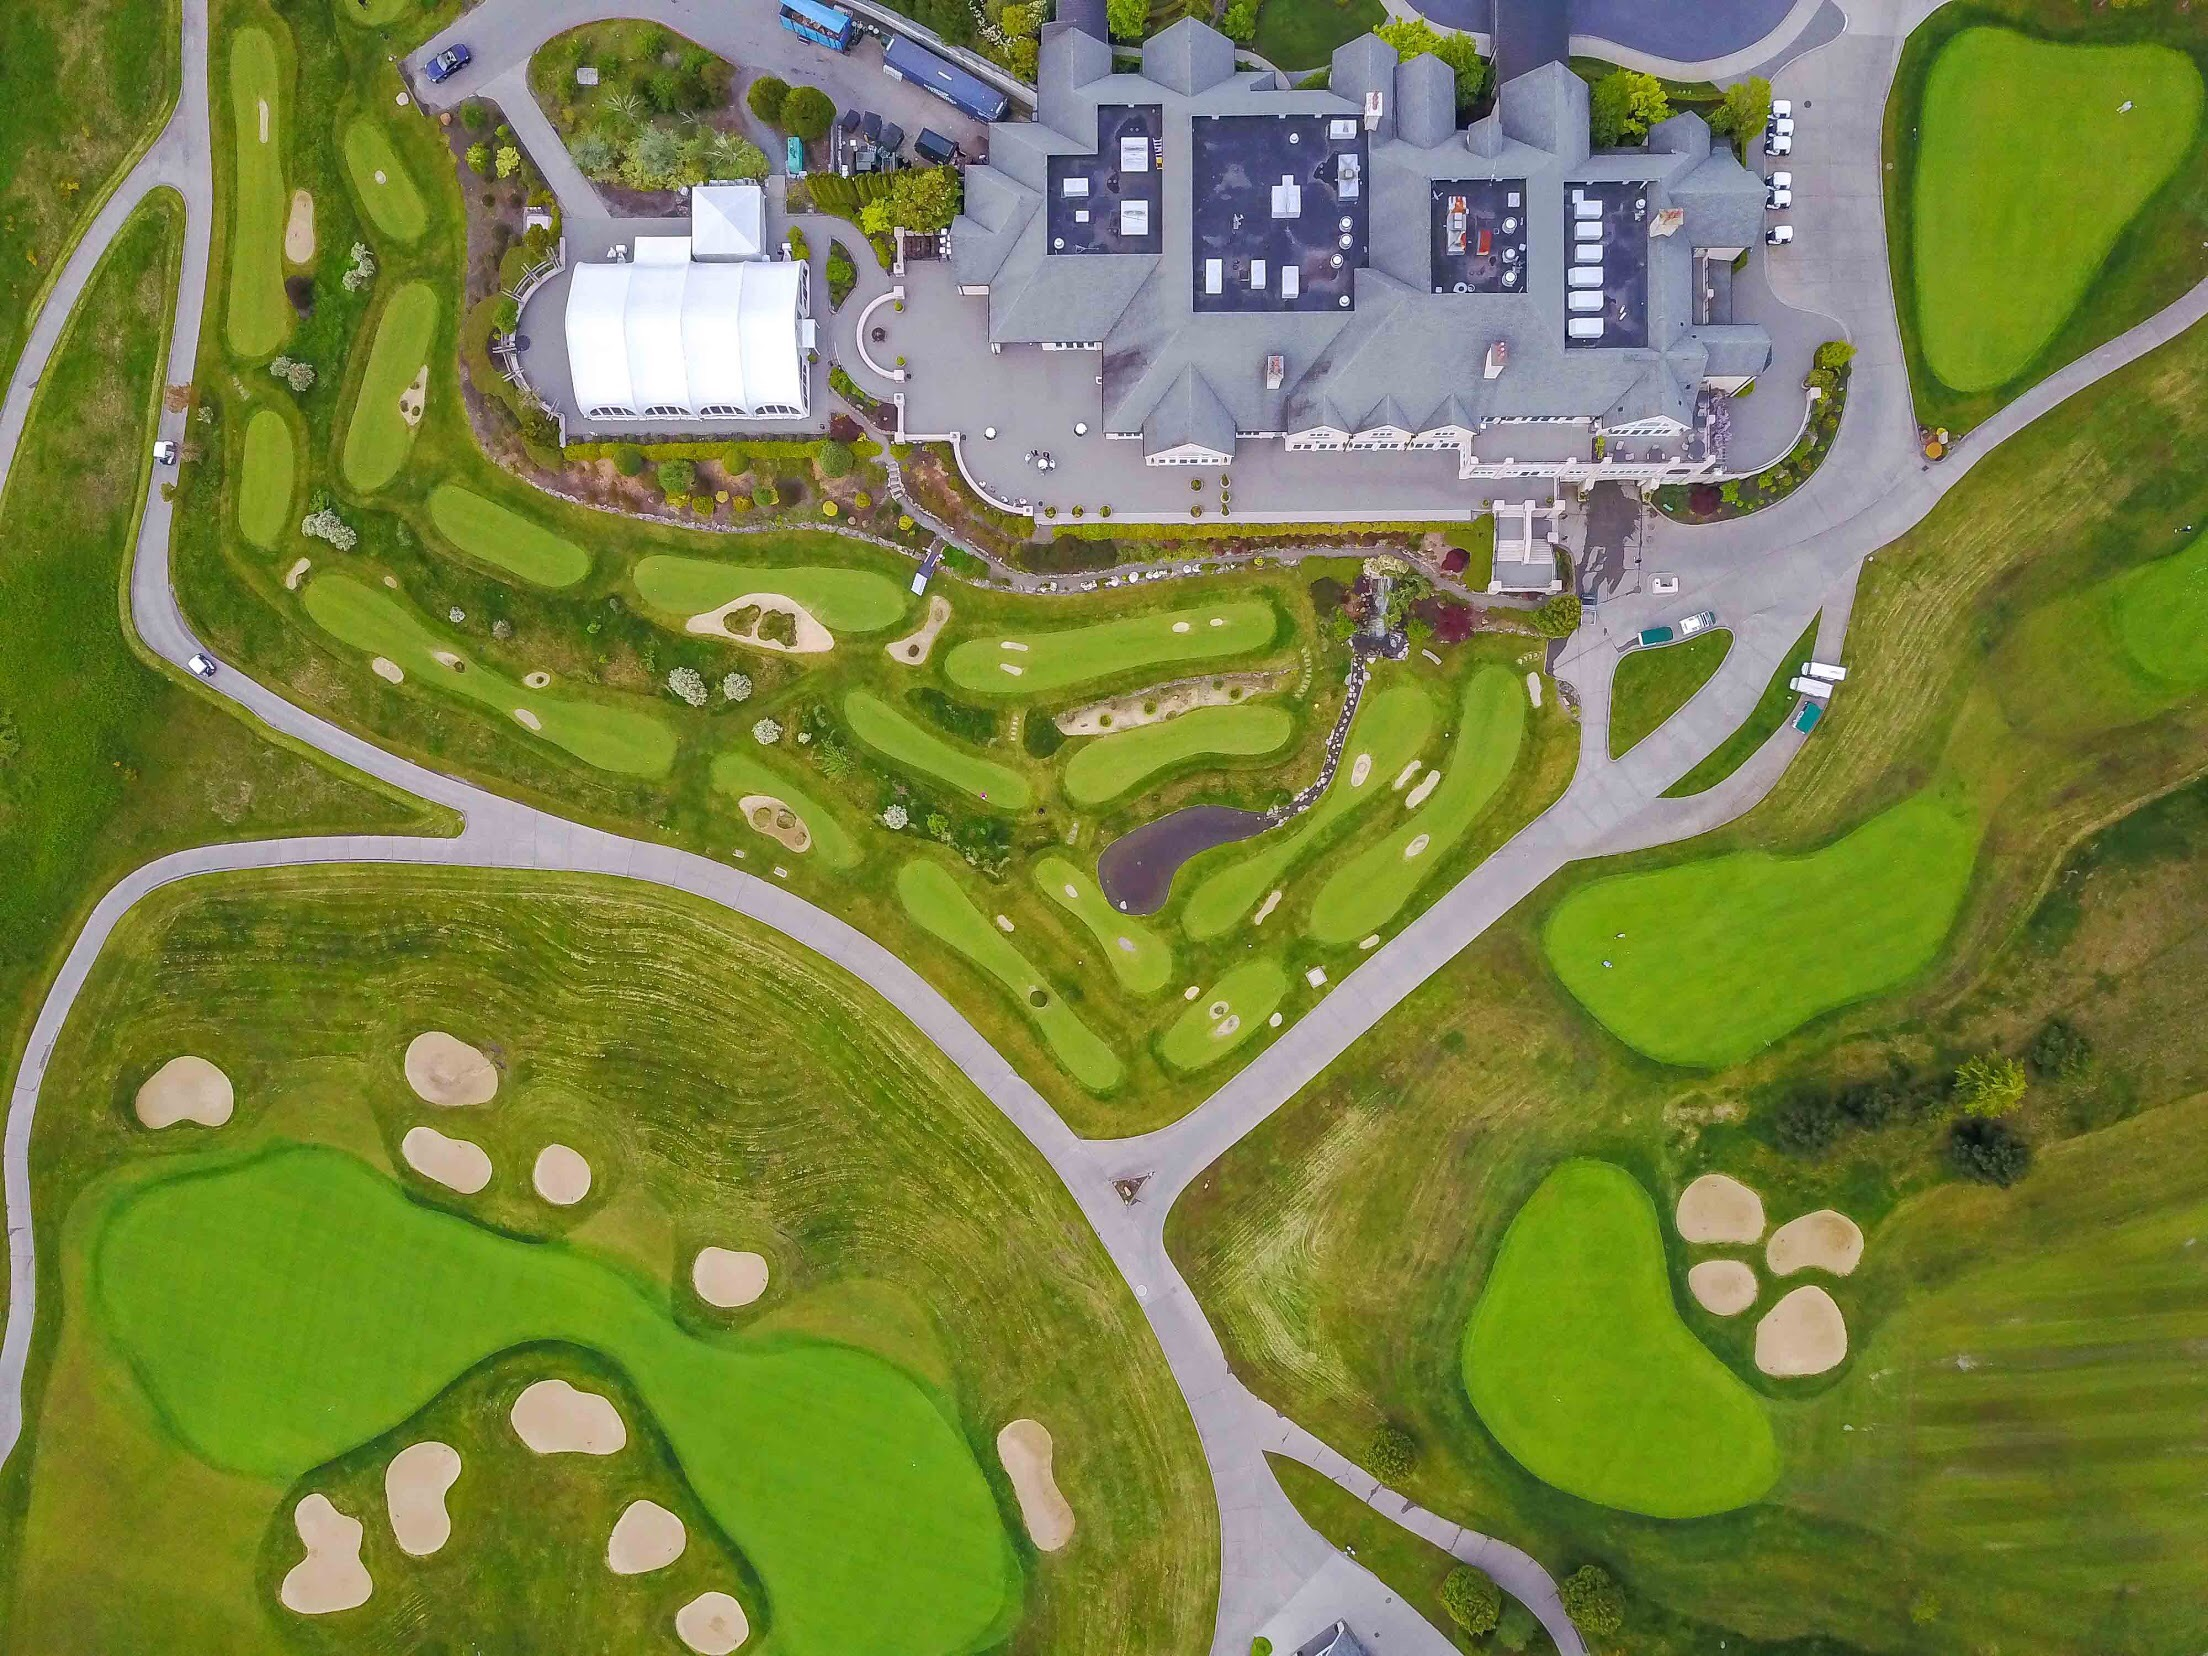 The view from above the clubhouse at Newcastle and the Rusty Putter; an 18 hole putting course.